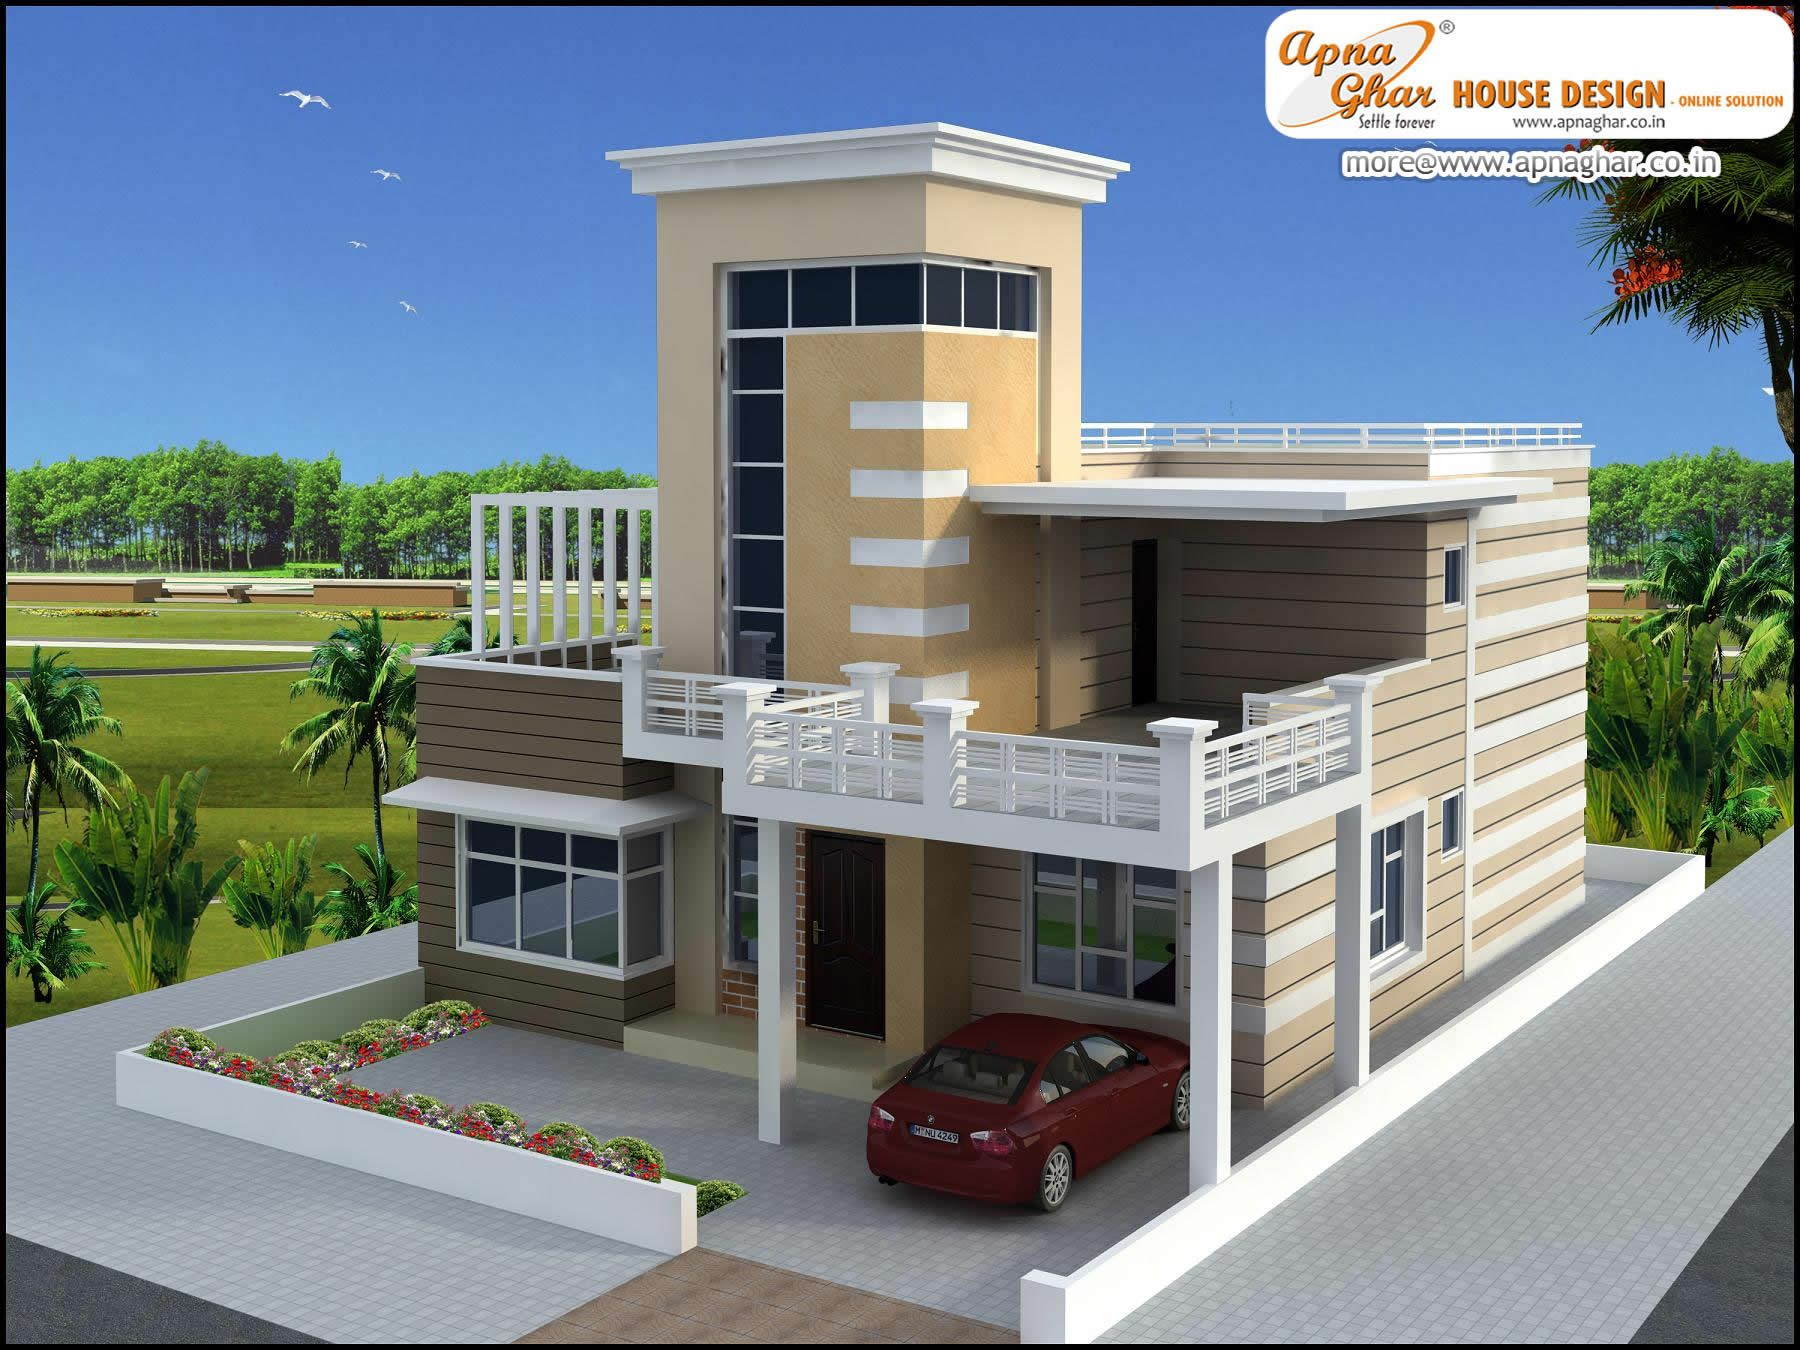 Luxury duplex 2 floors house design area 252m2 21m x for Two floor house design